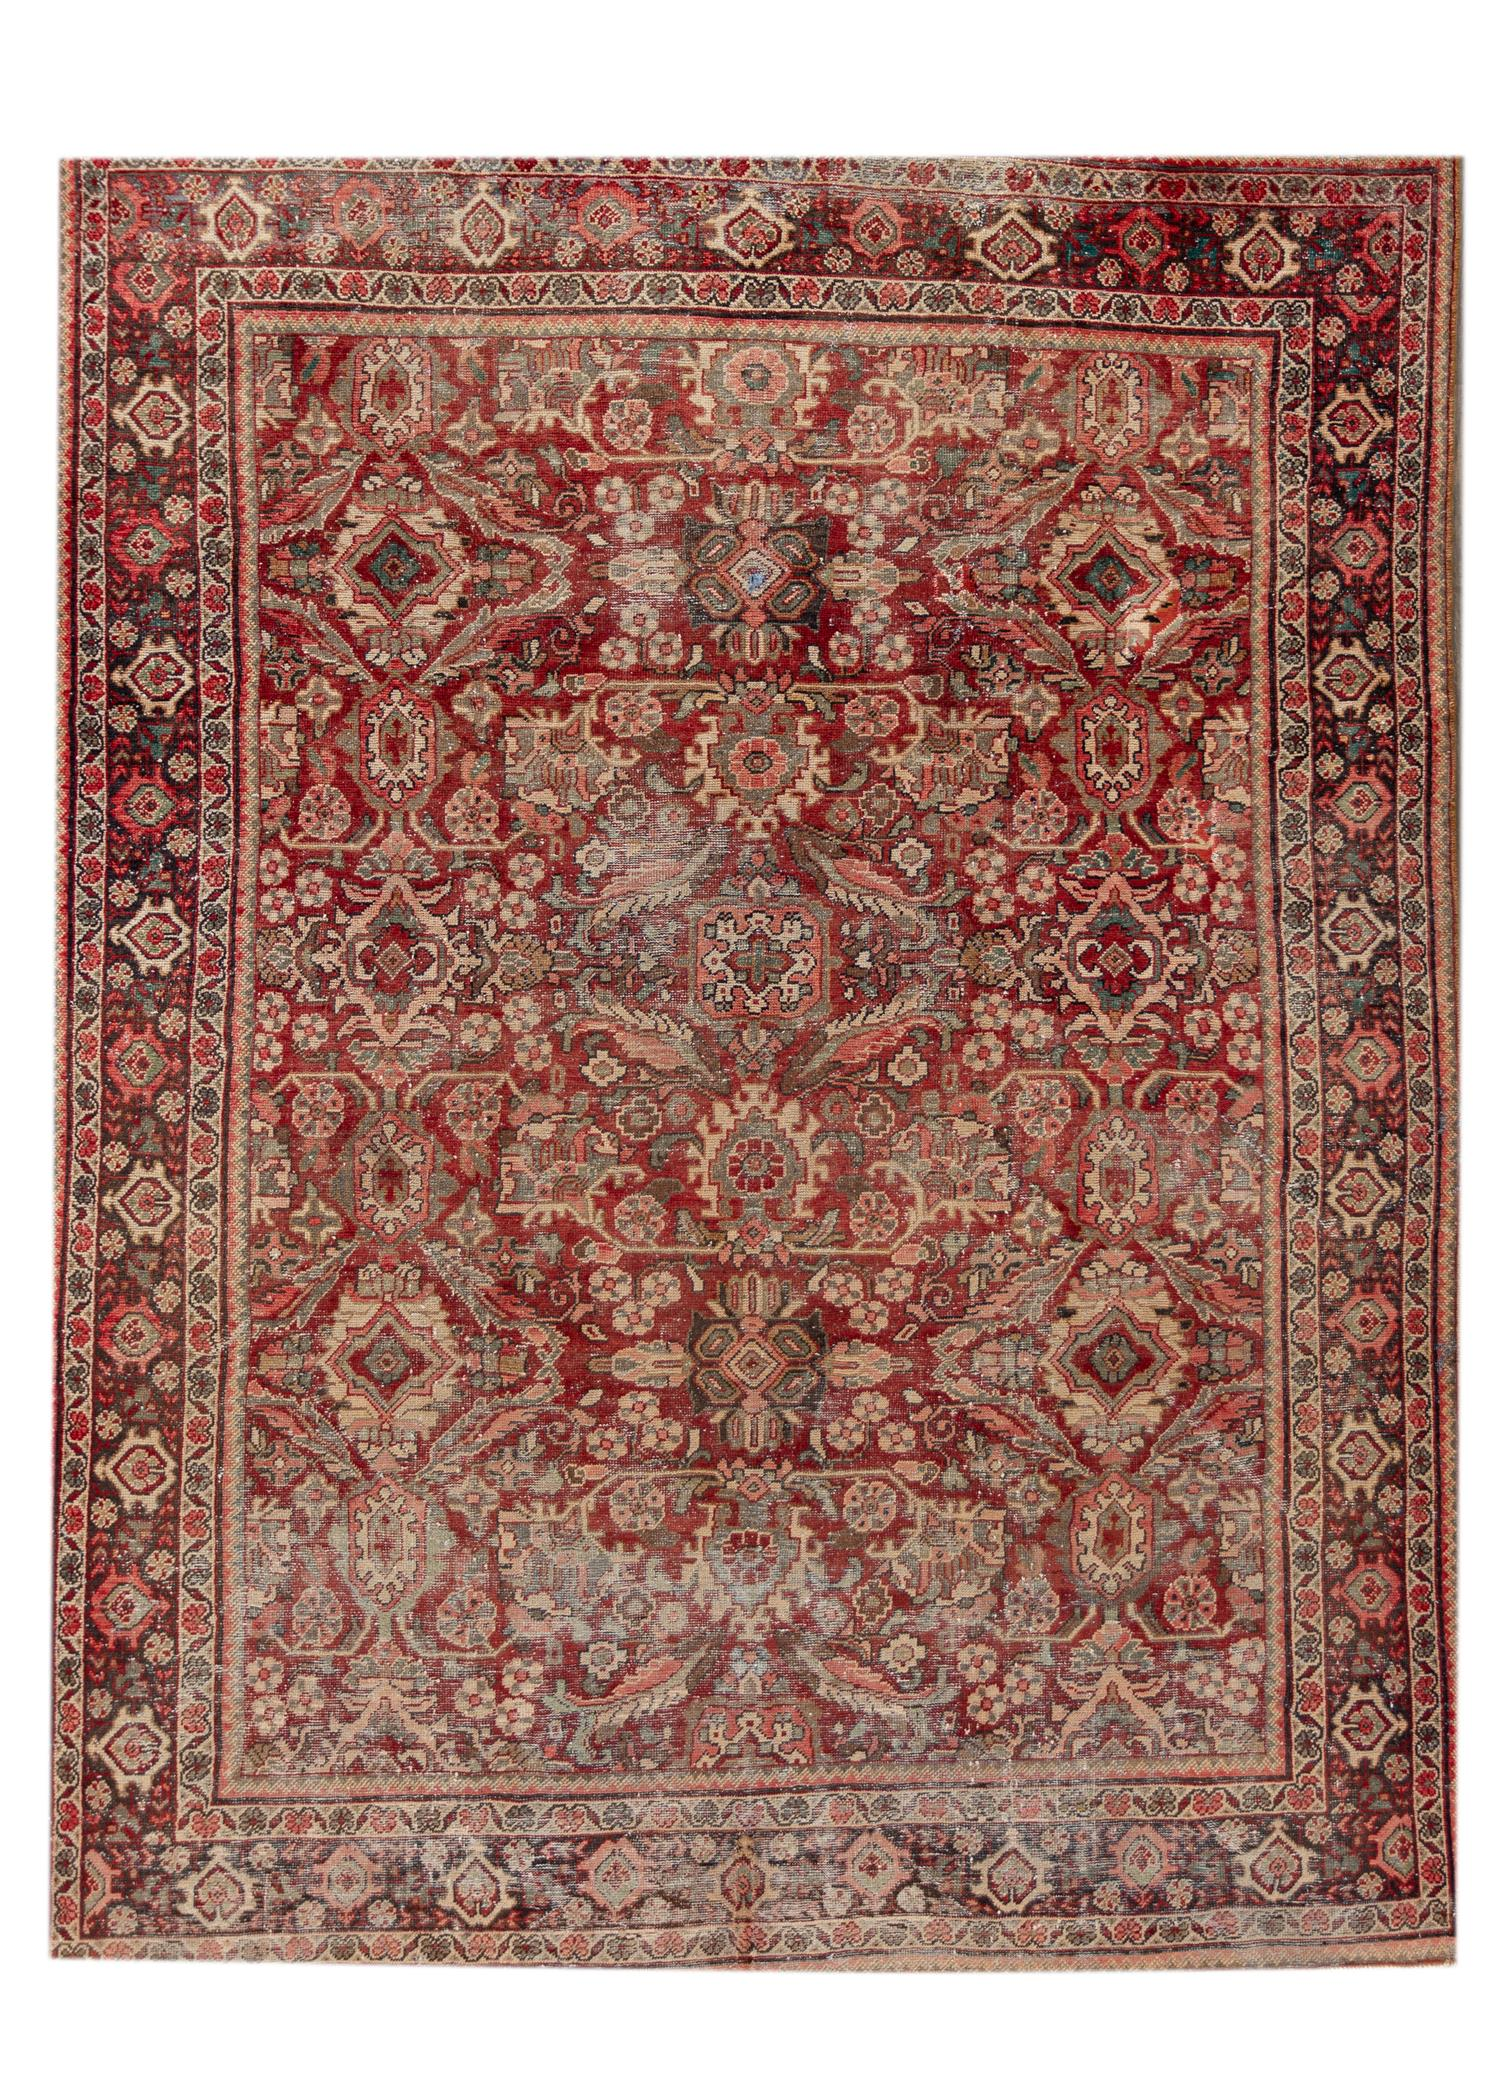 Antique 20th Century Mahal Rug, 10X13